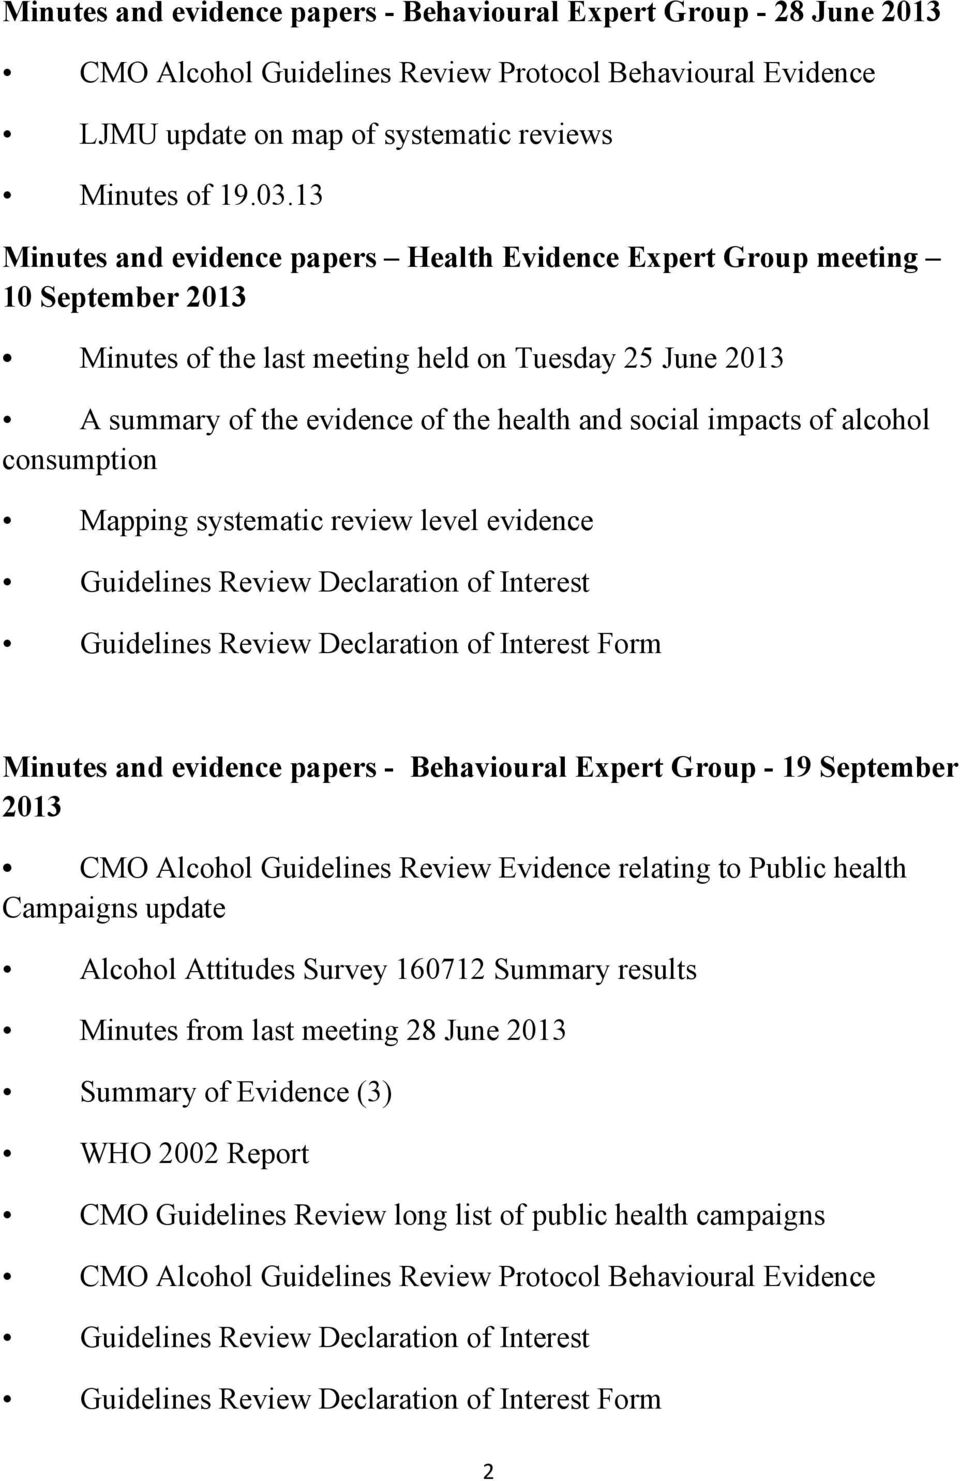 impacts of alcohol consumption Mapping systematic review level evidence Guidelines Review Declaration of Interest Minutes and evidence papers - Behavioural Expert Group - 19 September 2013 CMO